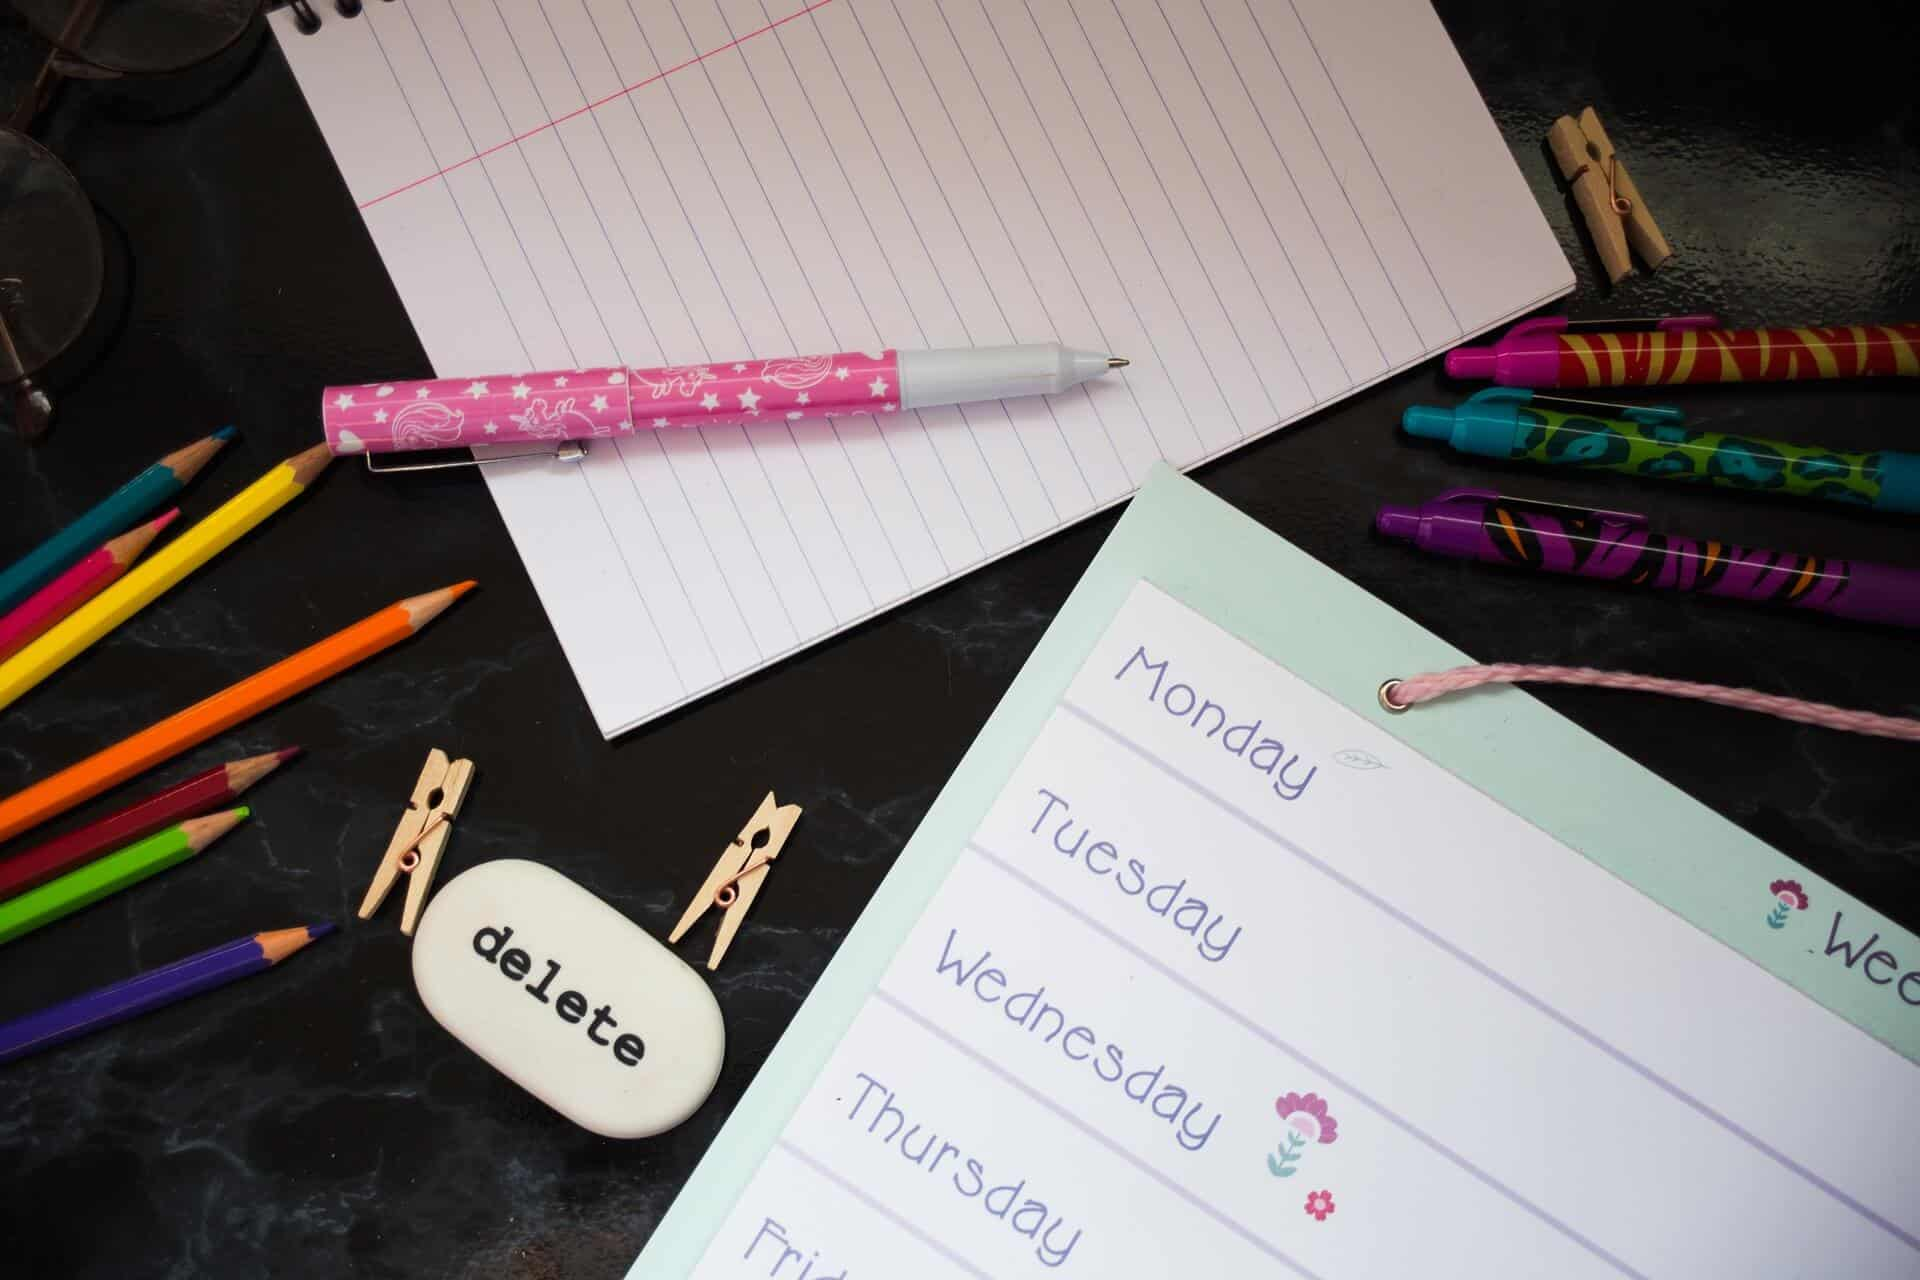 A college planner with pens and paper